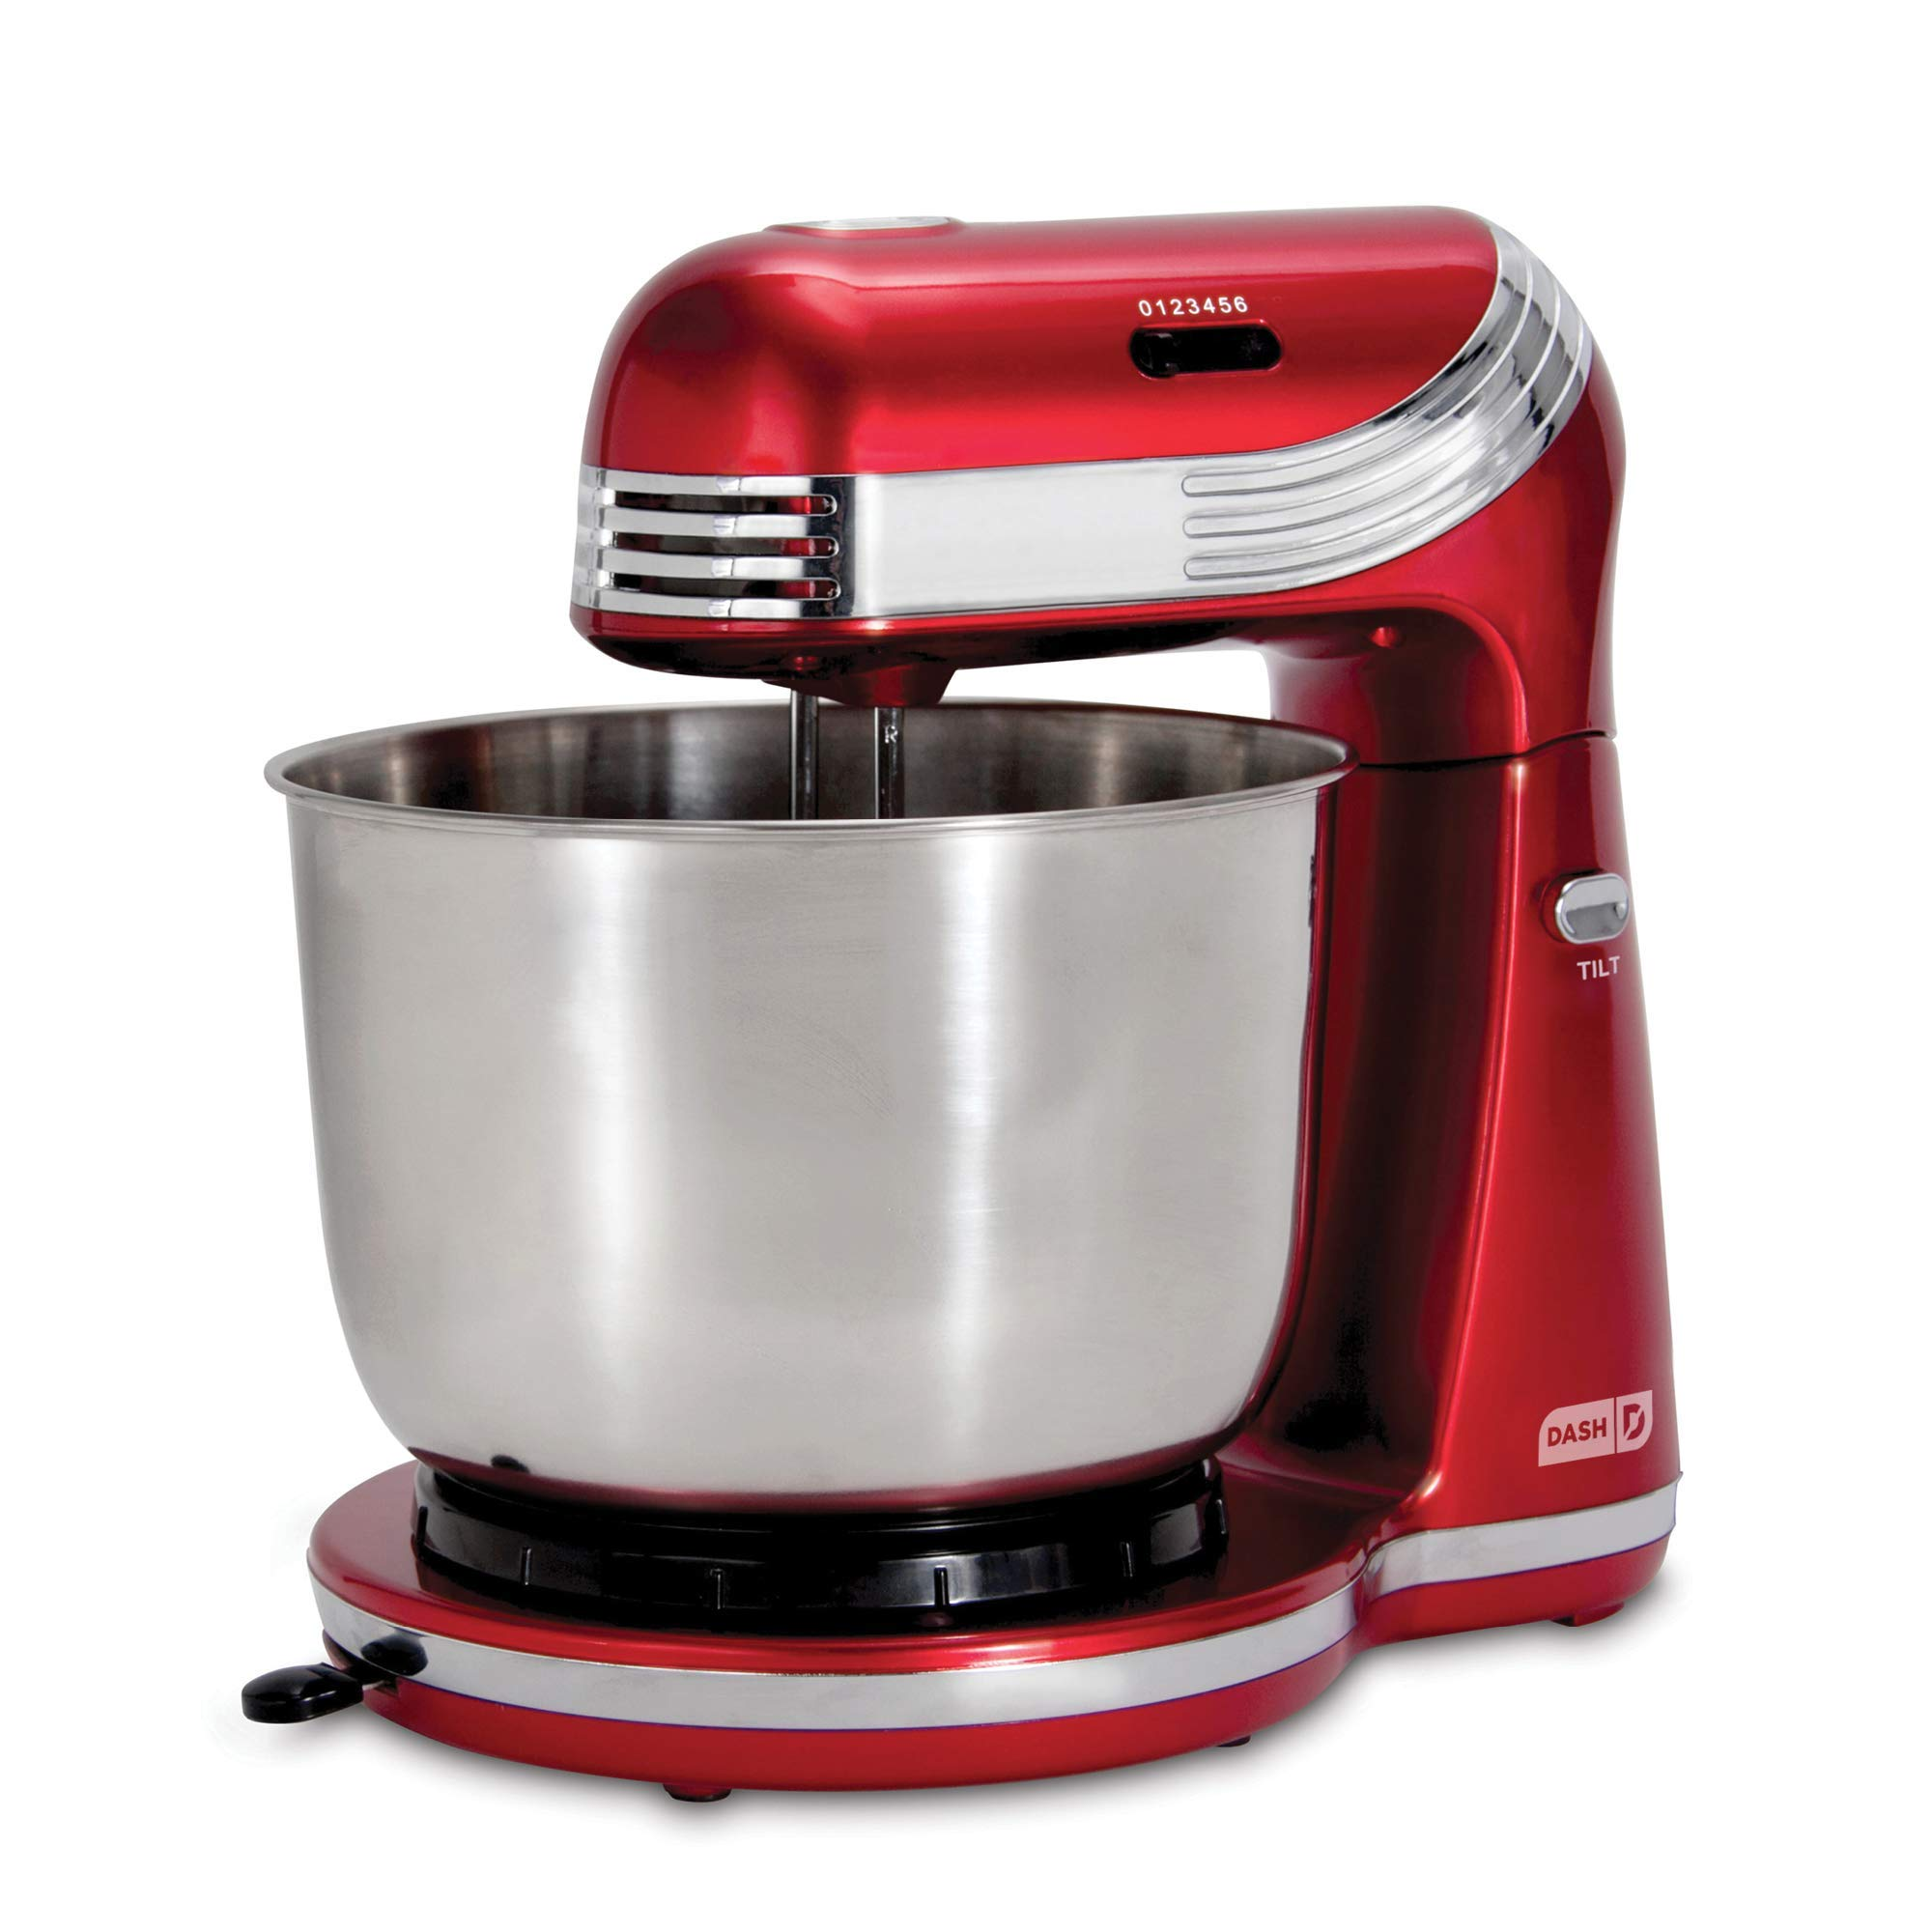 Dash Stand Mixer (Electric Mixer for Everyday Use): 6 Speed Stand Mixer with 3 qt Stainless Steel Mixing Bowl, Dough Hooks & Mixer Beaters for Dressings, Frosting, Meringues & More - Red (Renewed) by DASH